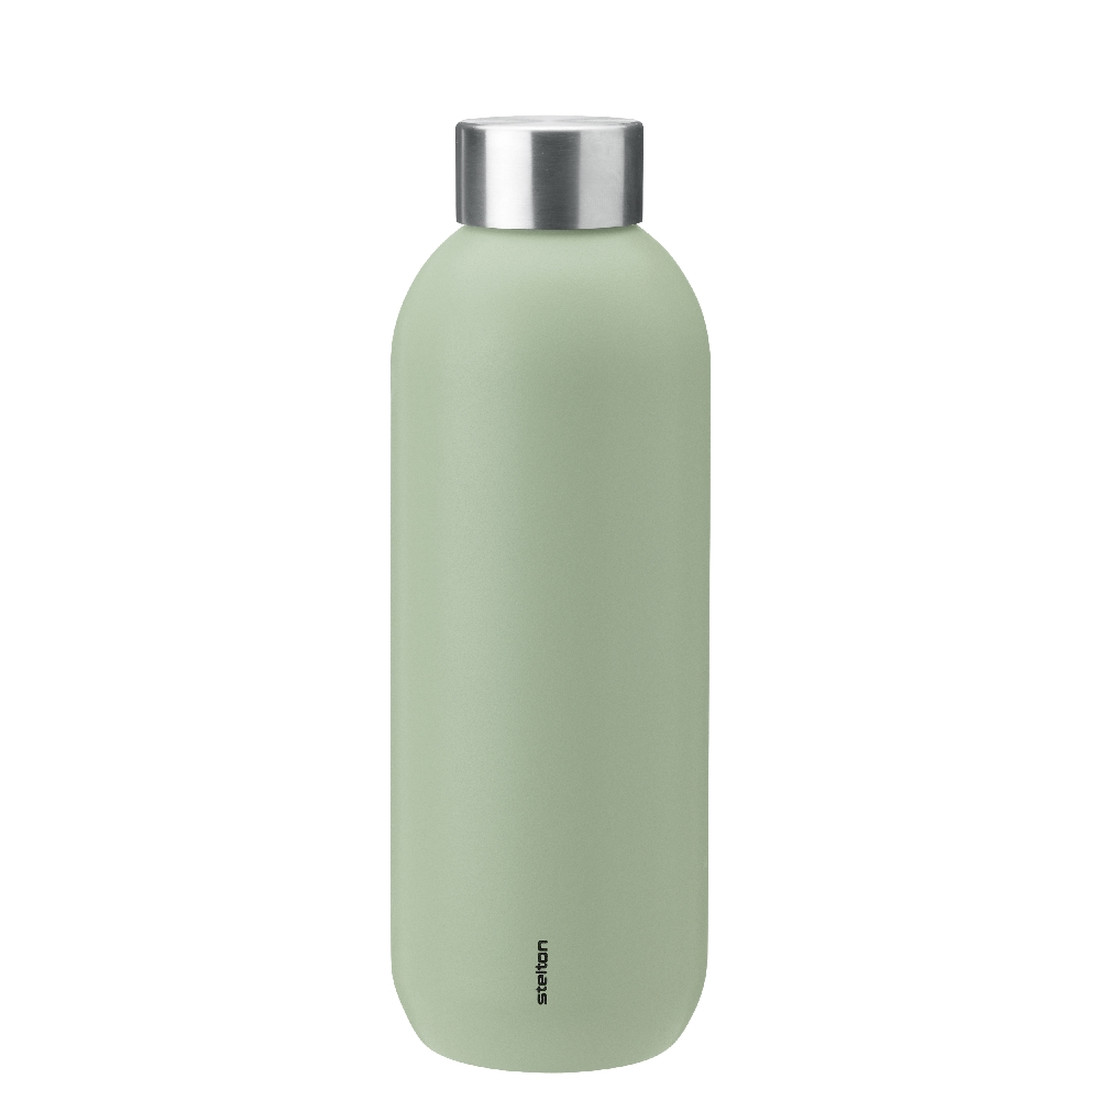 Keep Cool Thermosflasche 0.6 l - seagrass by stelton